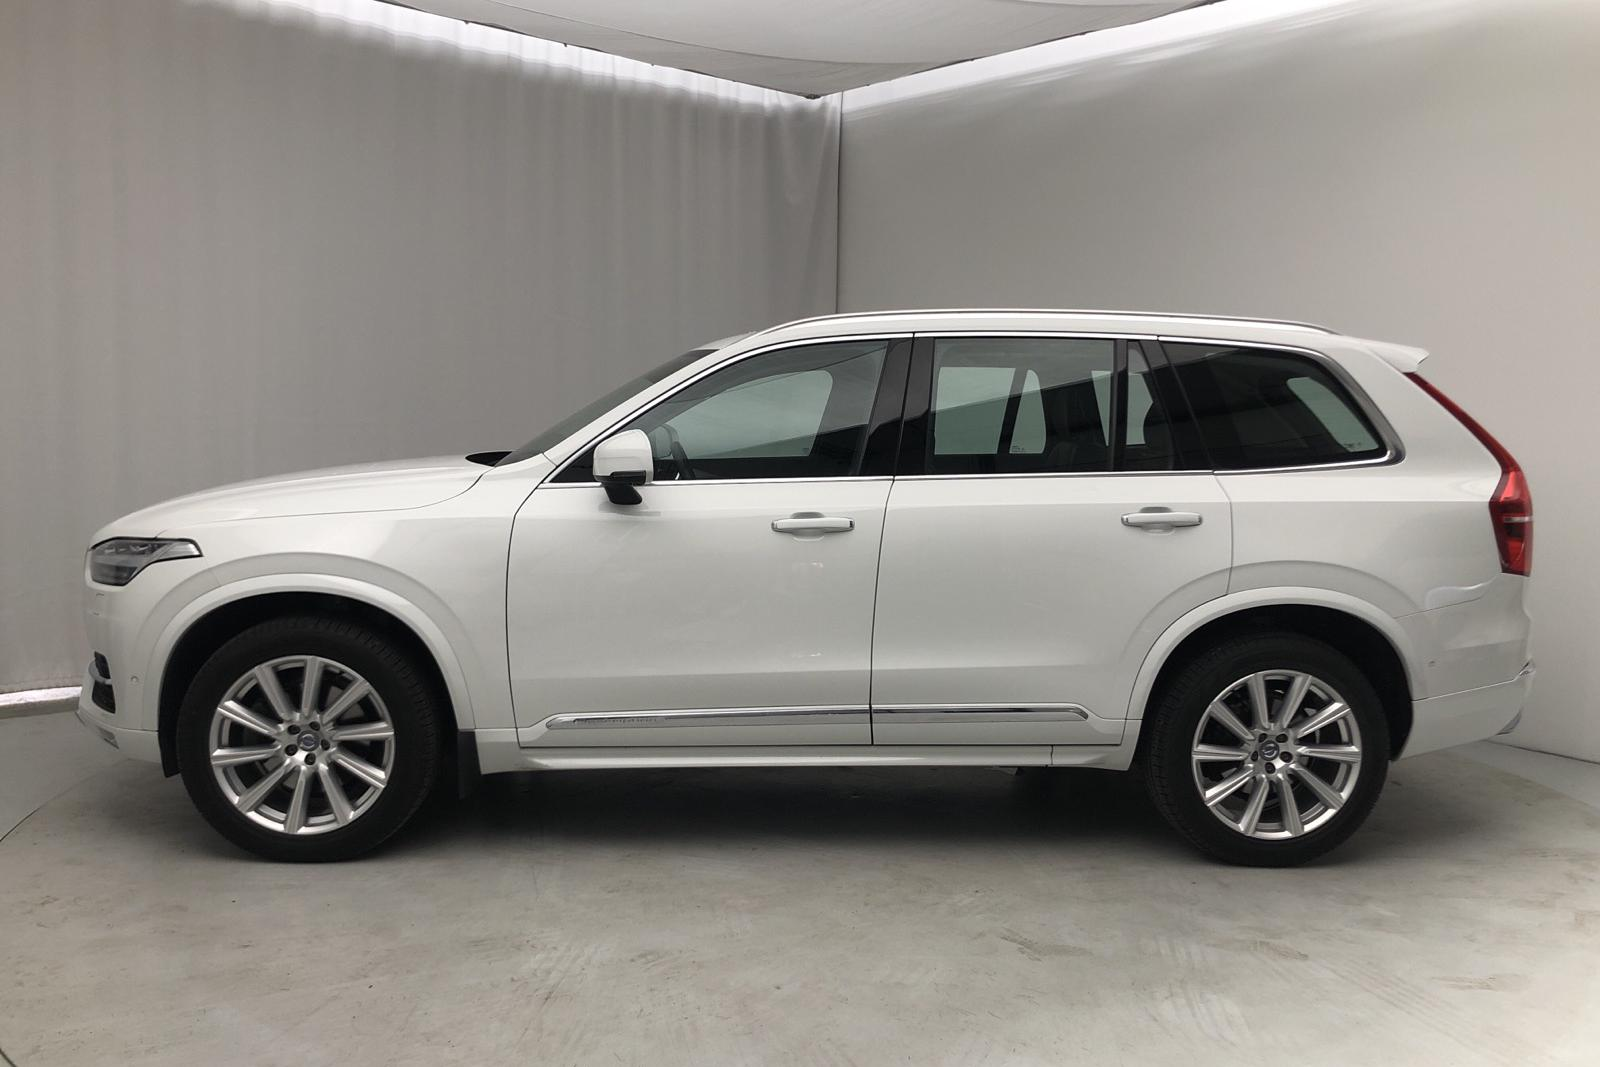 Volvo XC90 D5 AWD (225hk) - 30 000 km - Automatic - white